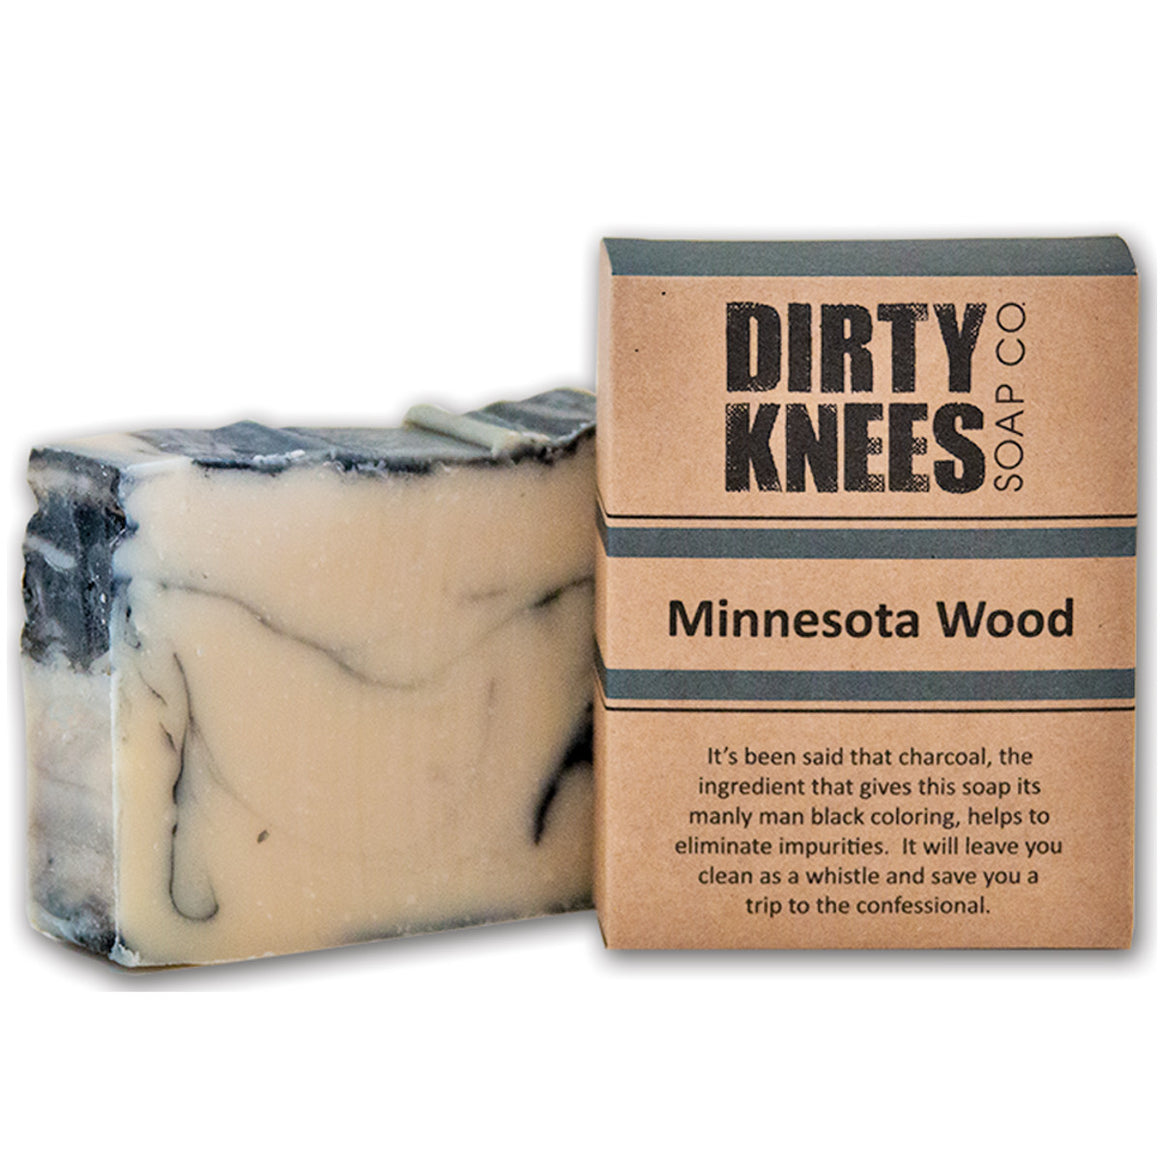 Minnesota Wood Bar Soap